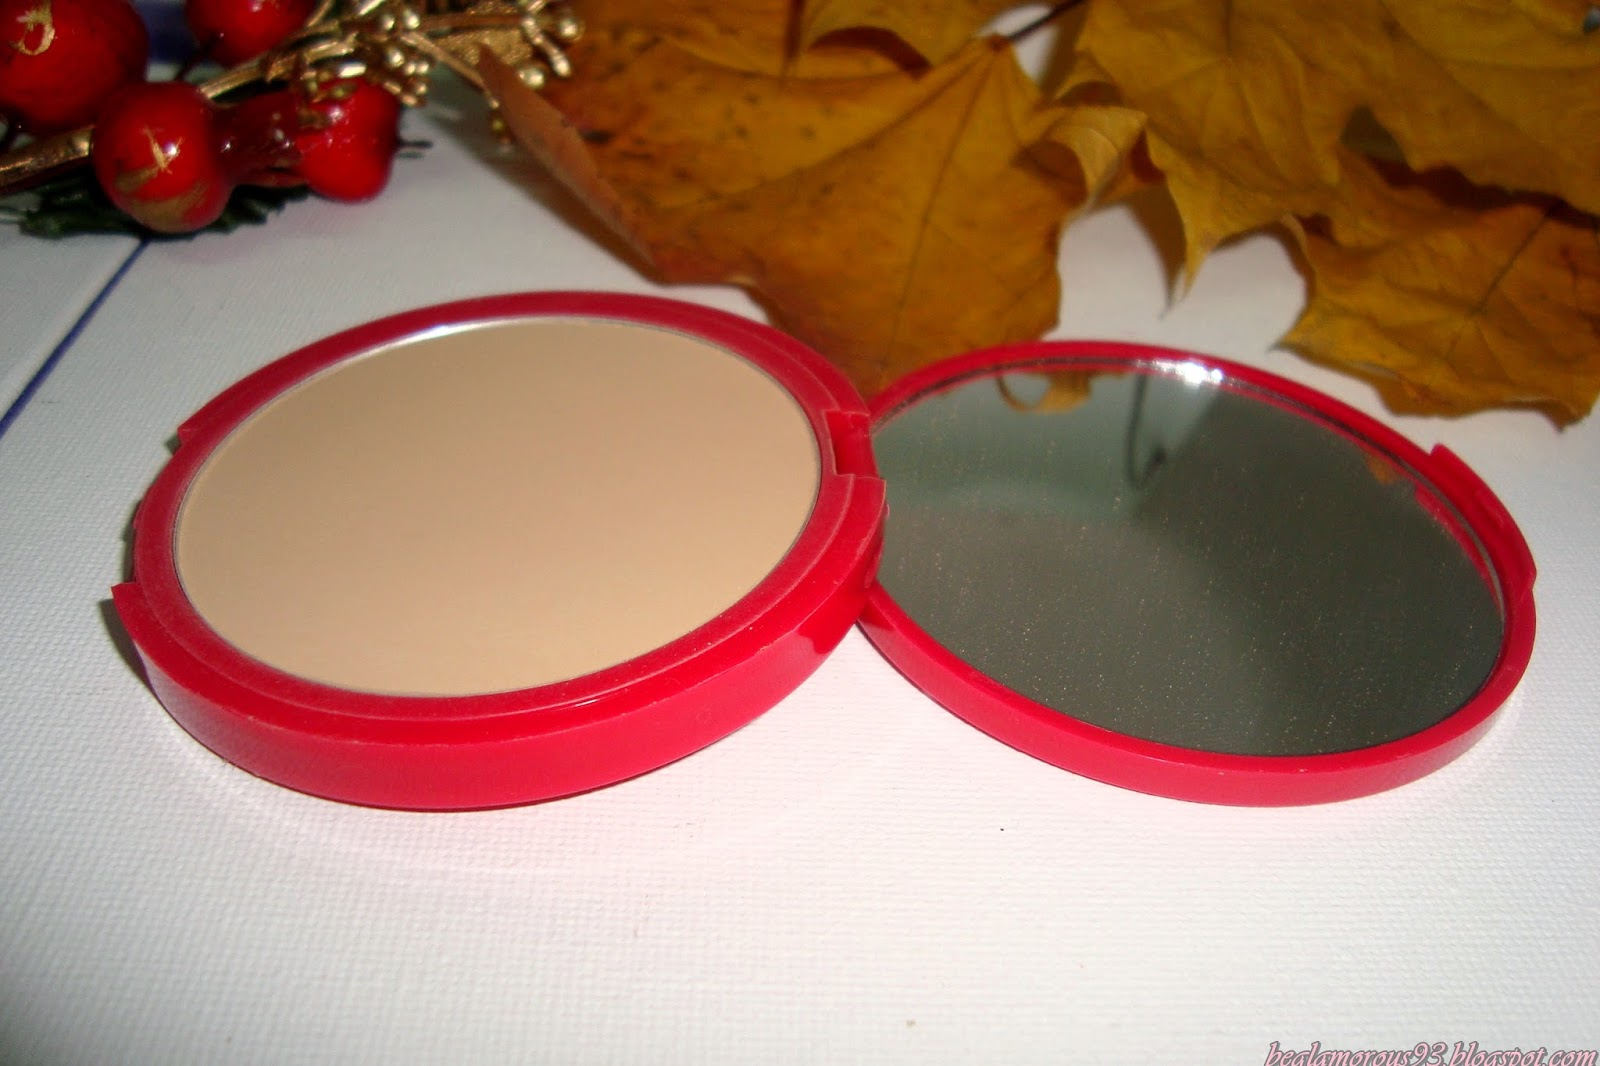 Bourjois Healthy balance powder